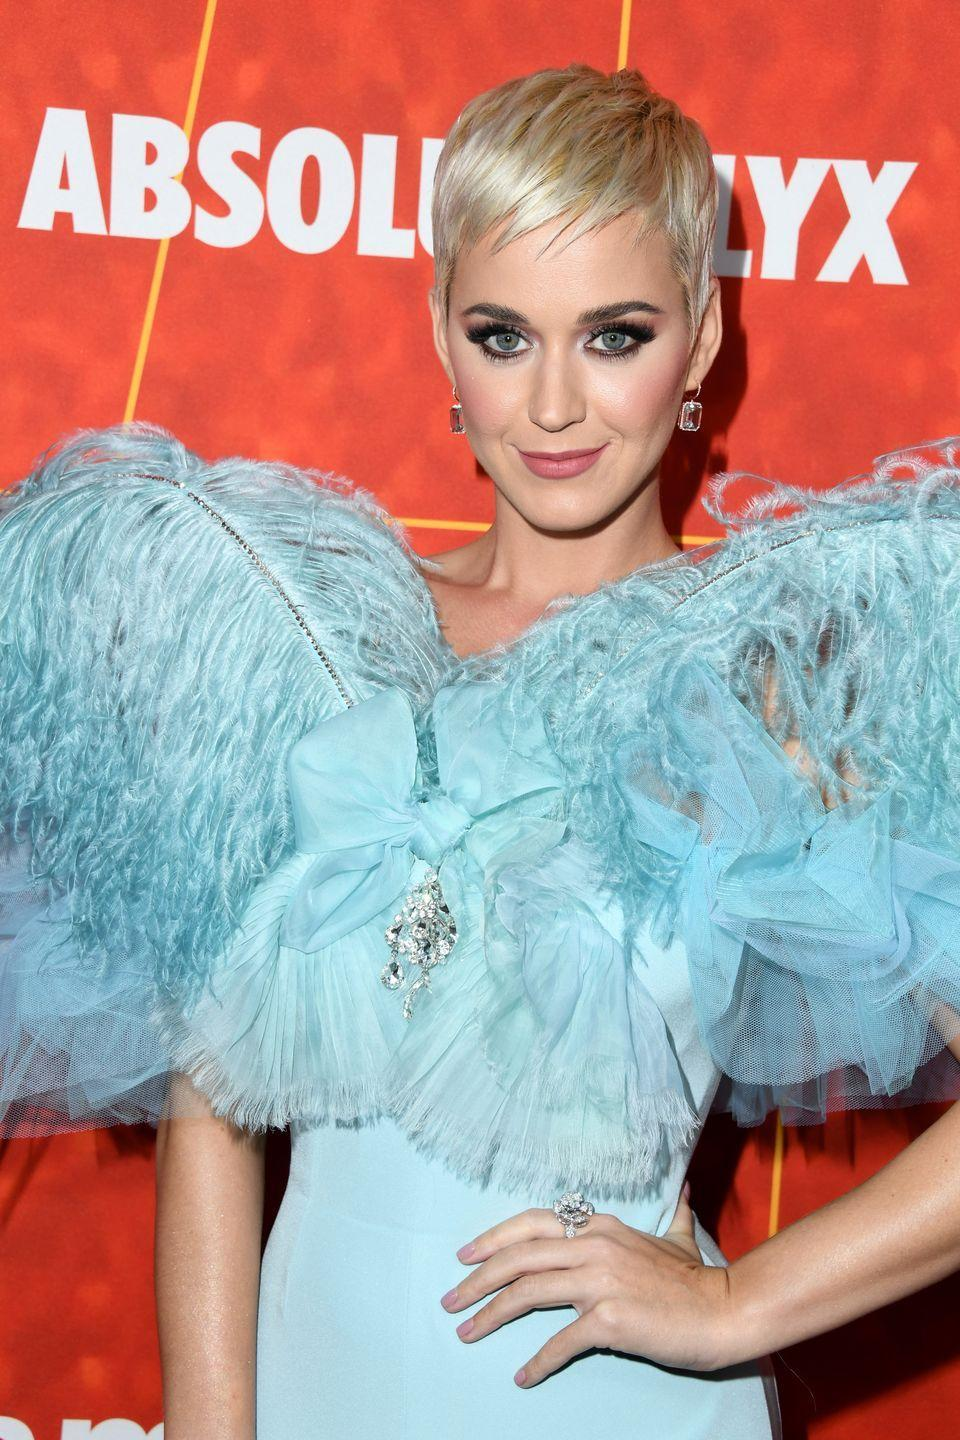 <p><strong>Real name: </strong>Katheryn Elizabeth Hudson</p><p>In 2003, Katy began performing as Katheryn Perry to avoid getting mistaken for actress Kate Hudson. But then she shortened it and went all in on Katy instead. </p>